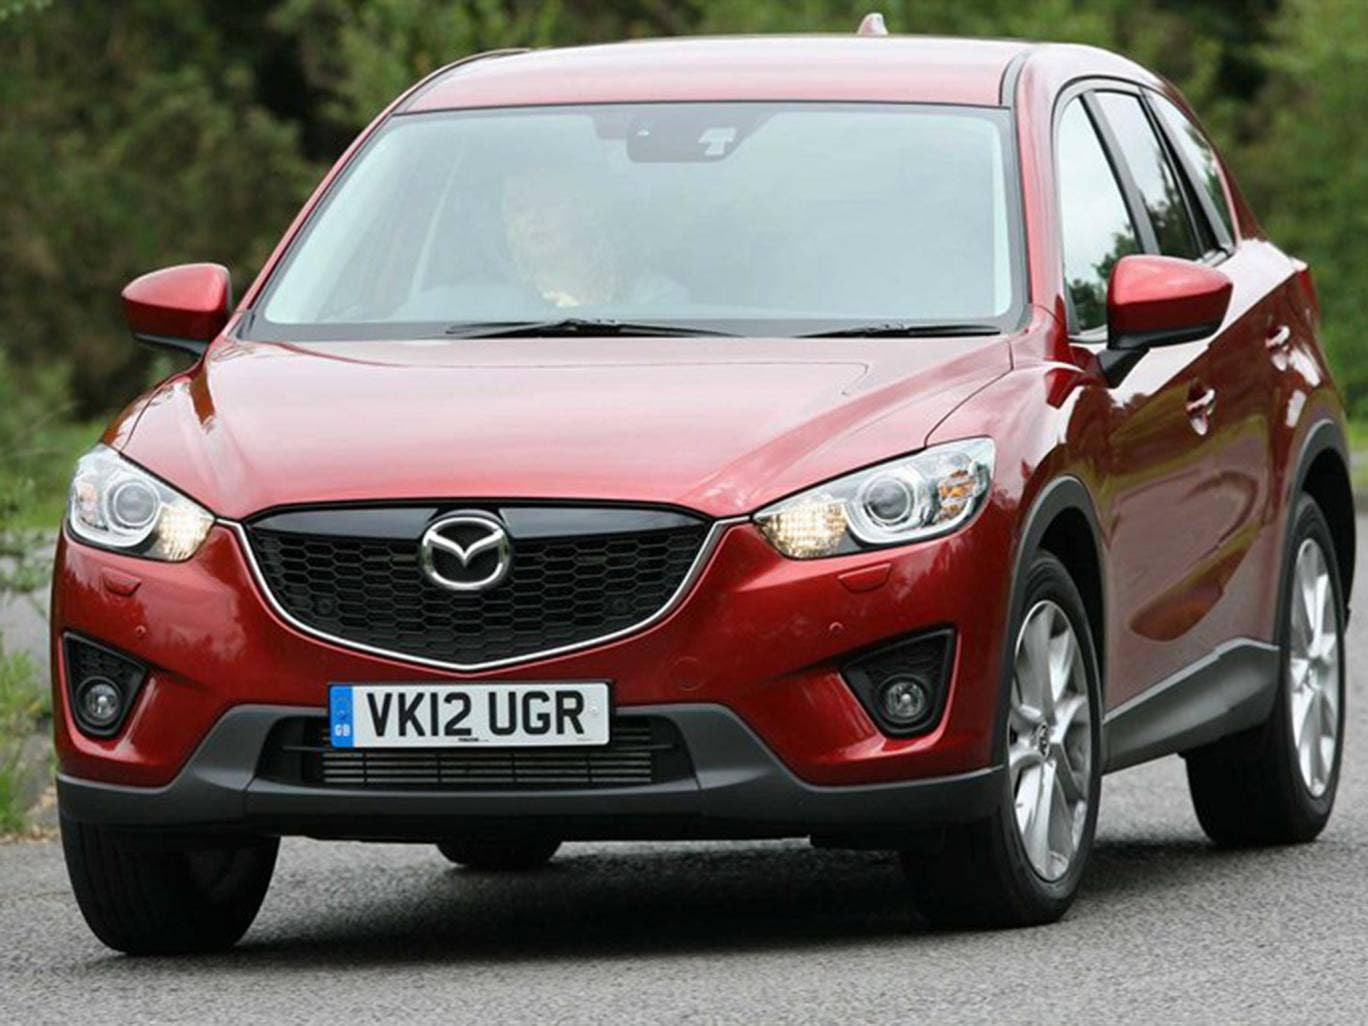 Mazda CX-5, car review: Excellent value and great behind the wheel